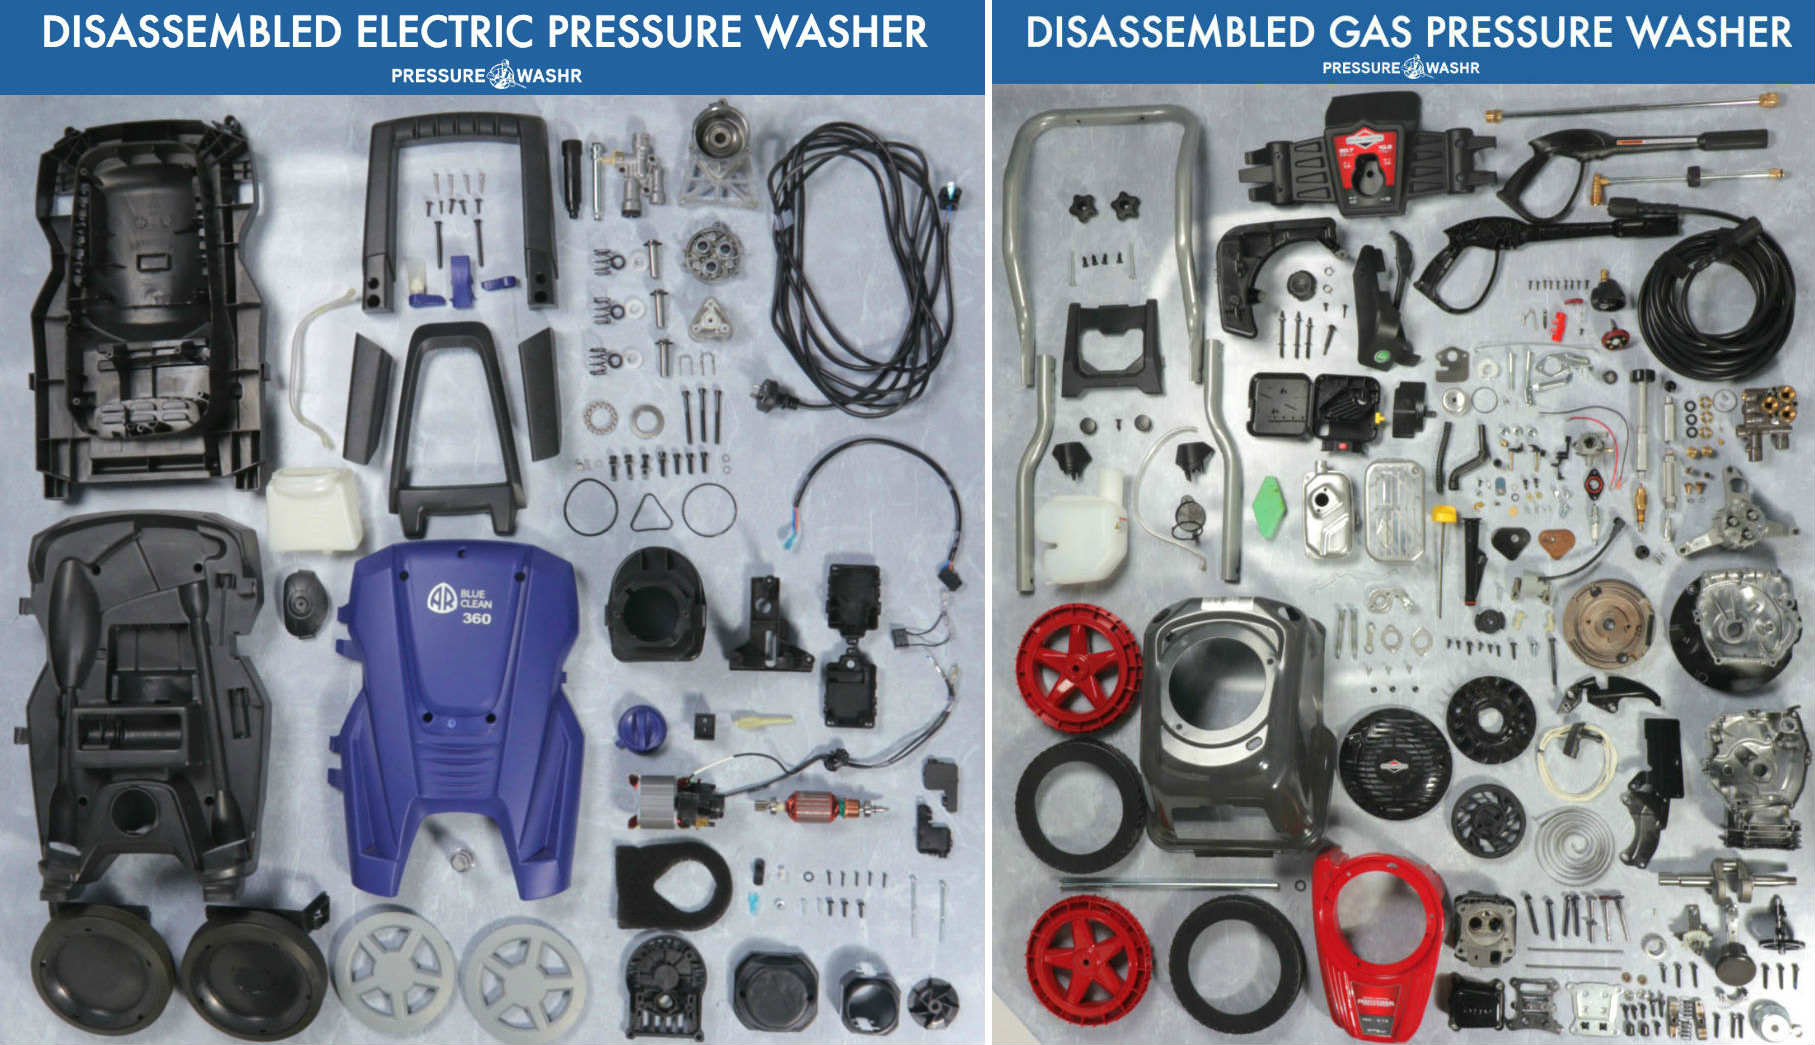 Comparing Disassembled Electric and Gas Pressure Washer